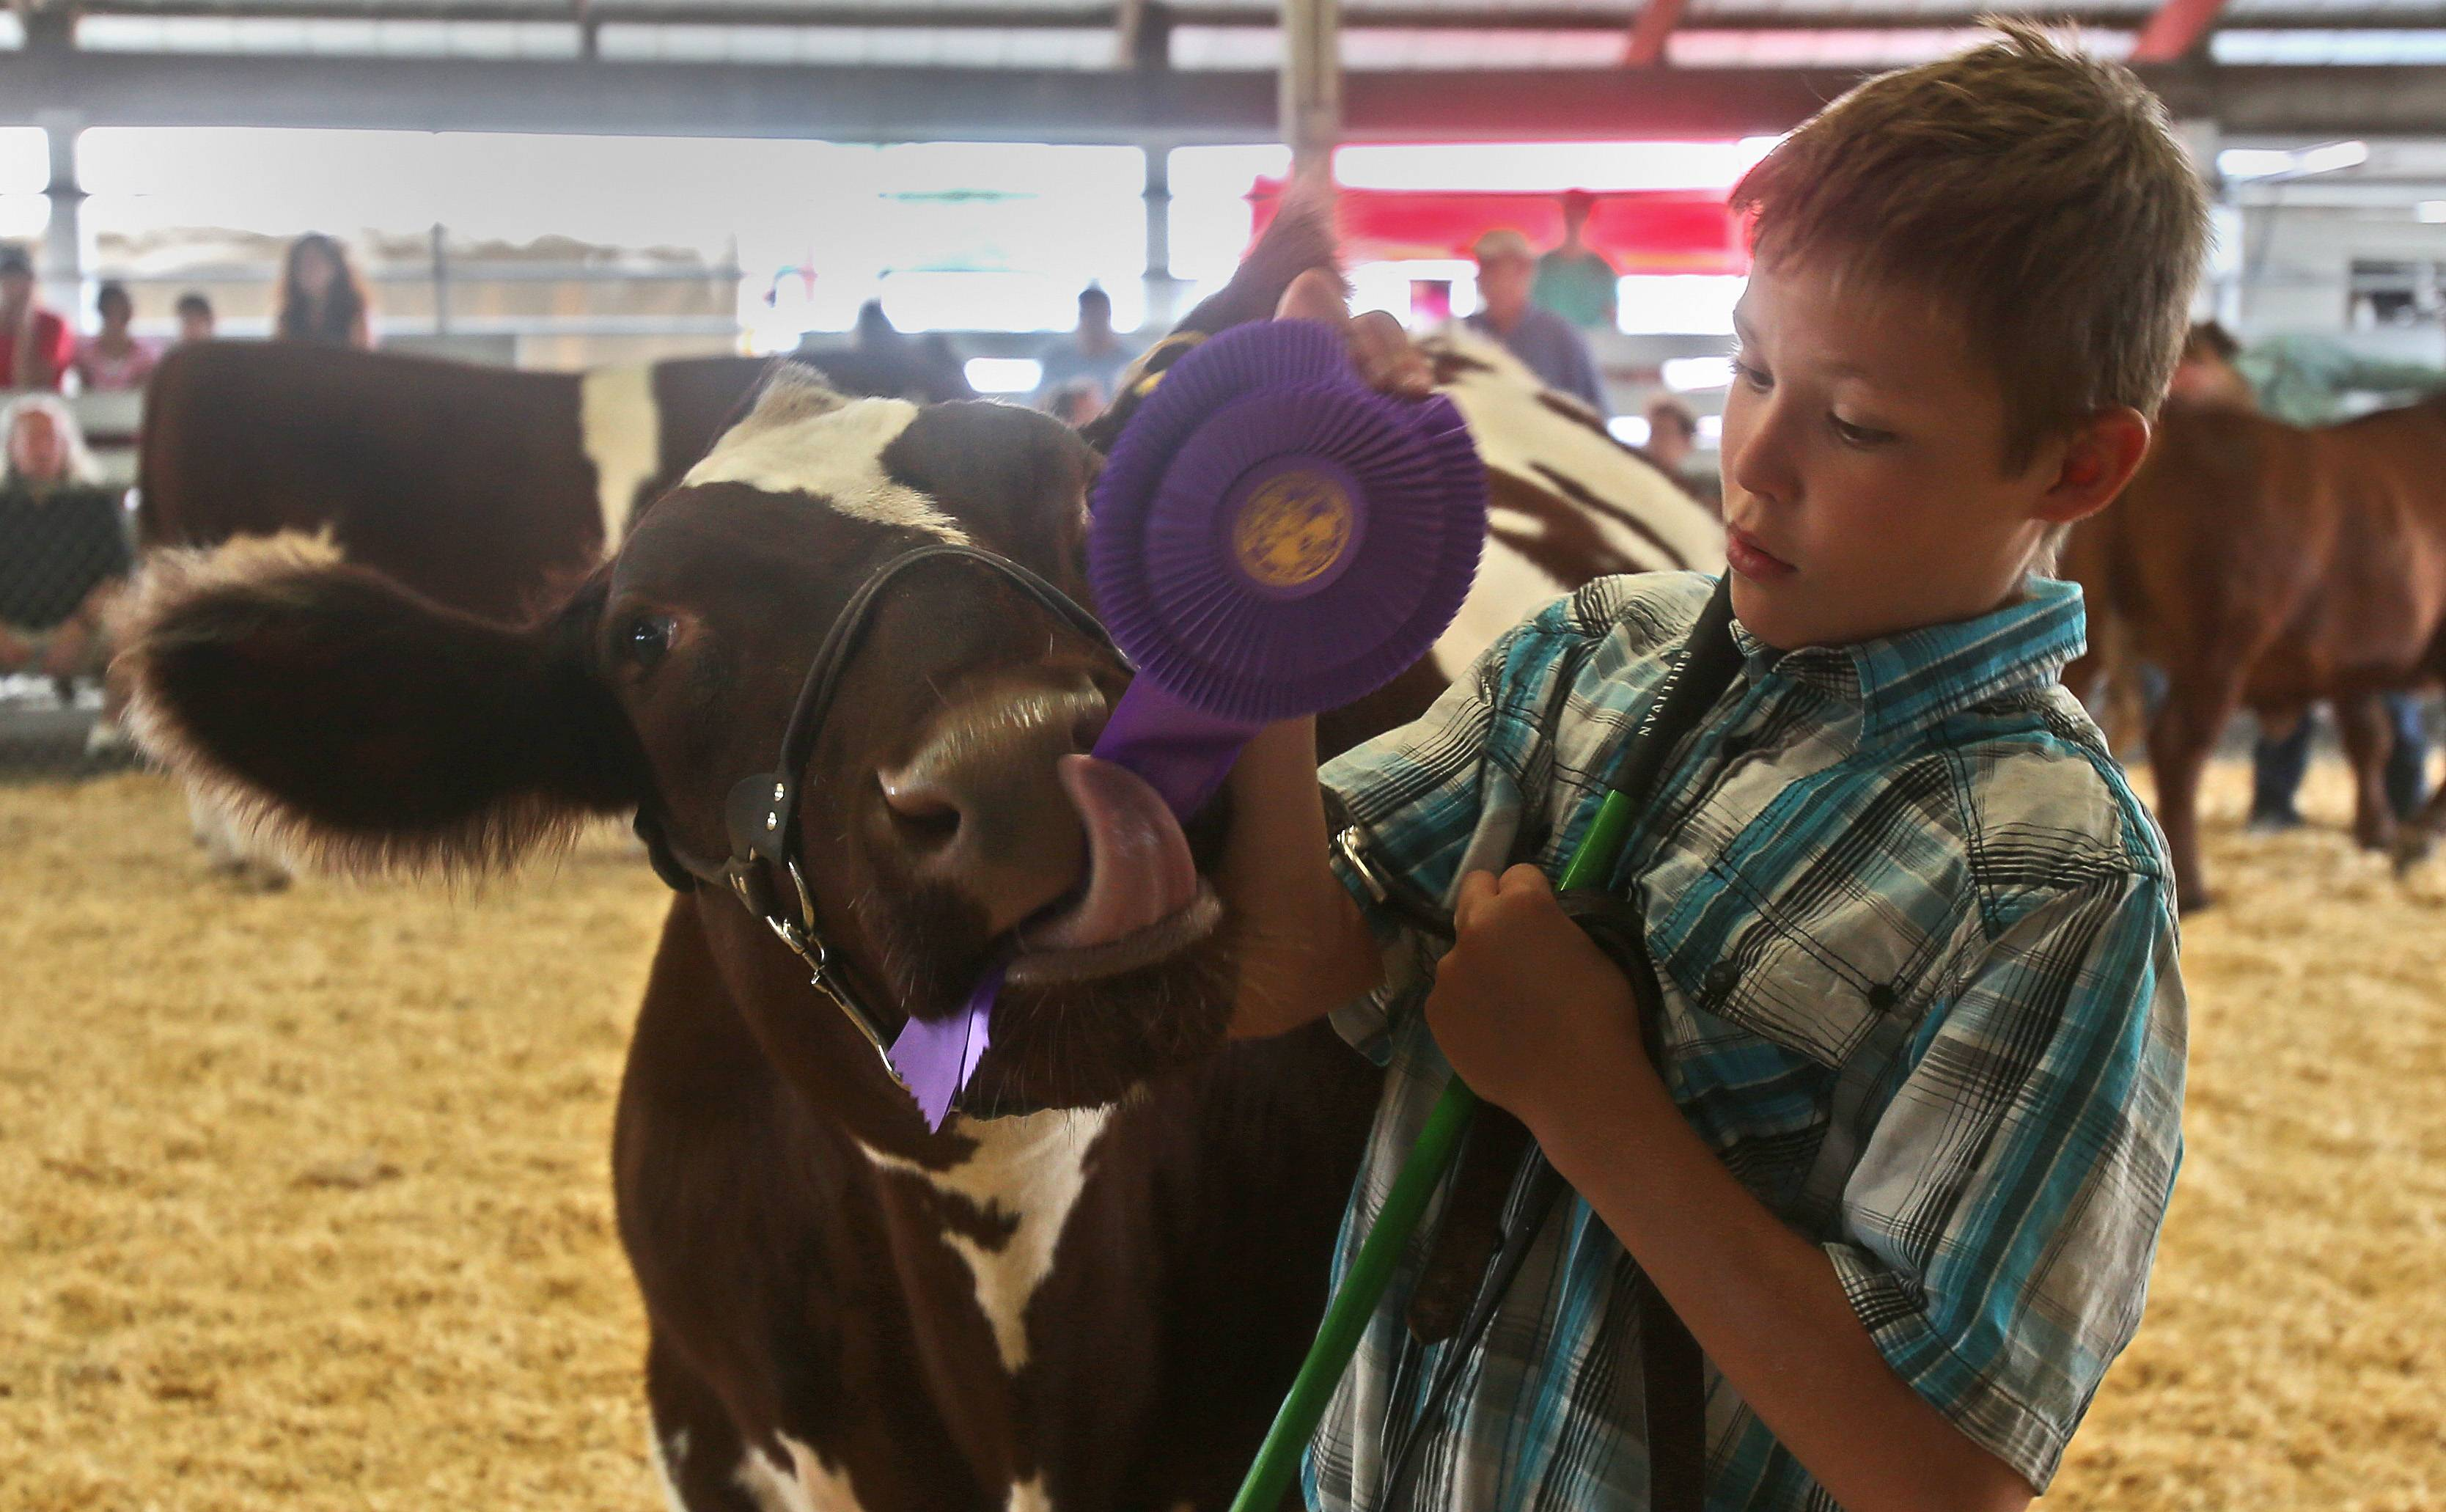 Chase Engel of Genoa wins the Grand Champion Steer open show contest Friday during beef cattle judging at the DuPage County Fair. His steer enjoys chewing on the first place ribbon.